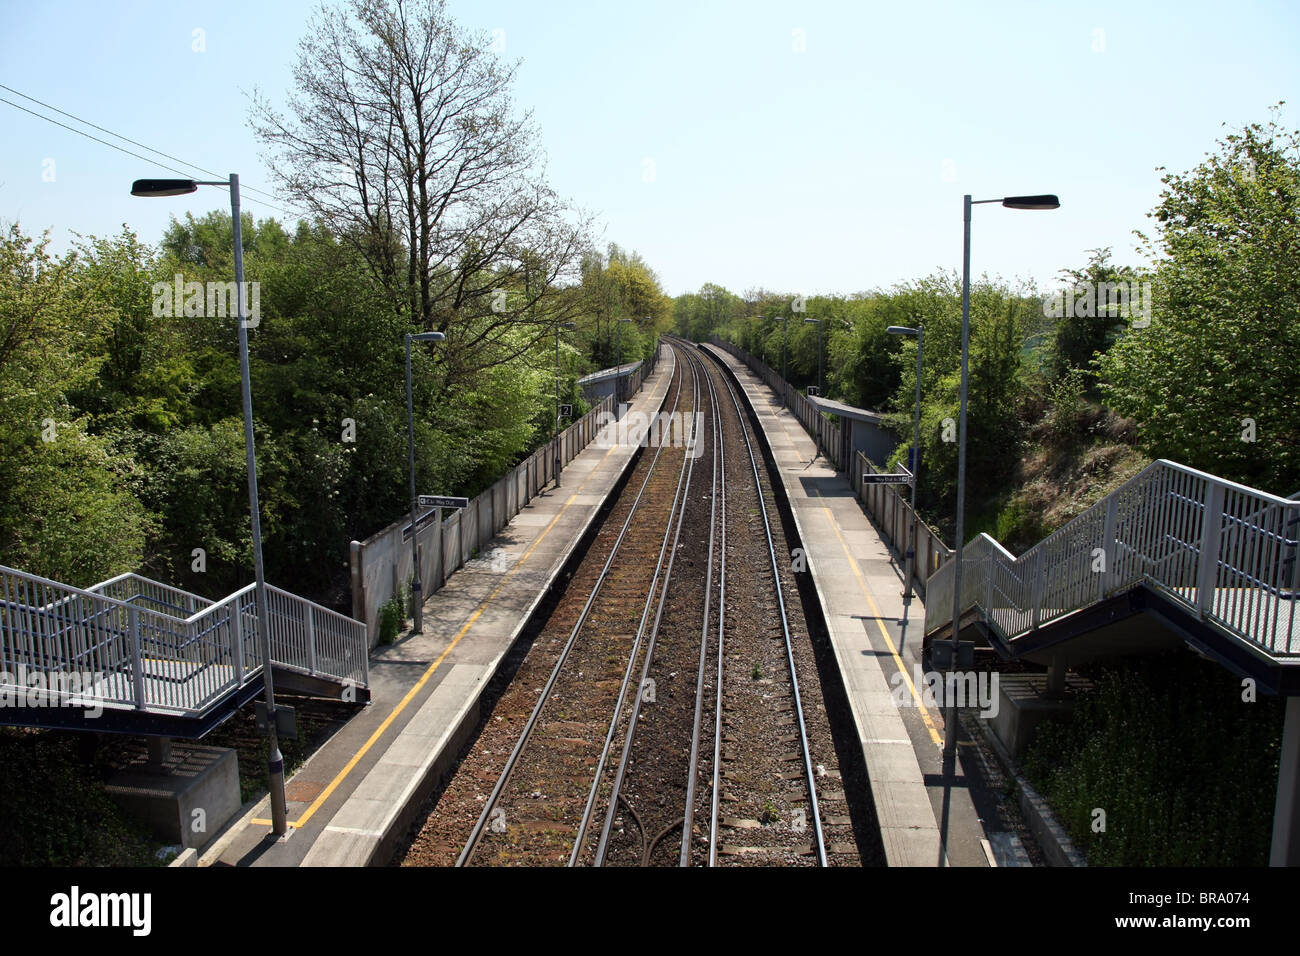 Rural railway track and station platform at Snowdown. This line runs between Dover and Canterbury, Kent, UK. - Stock Image